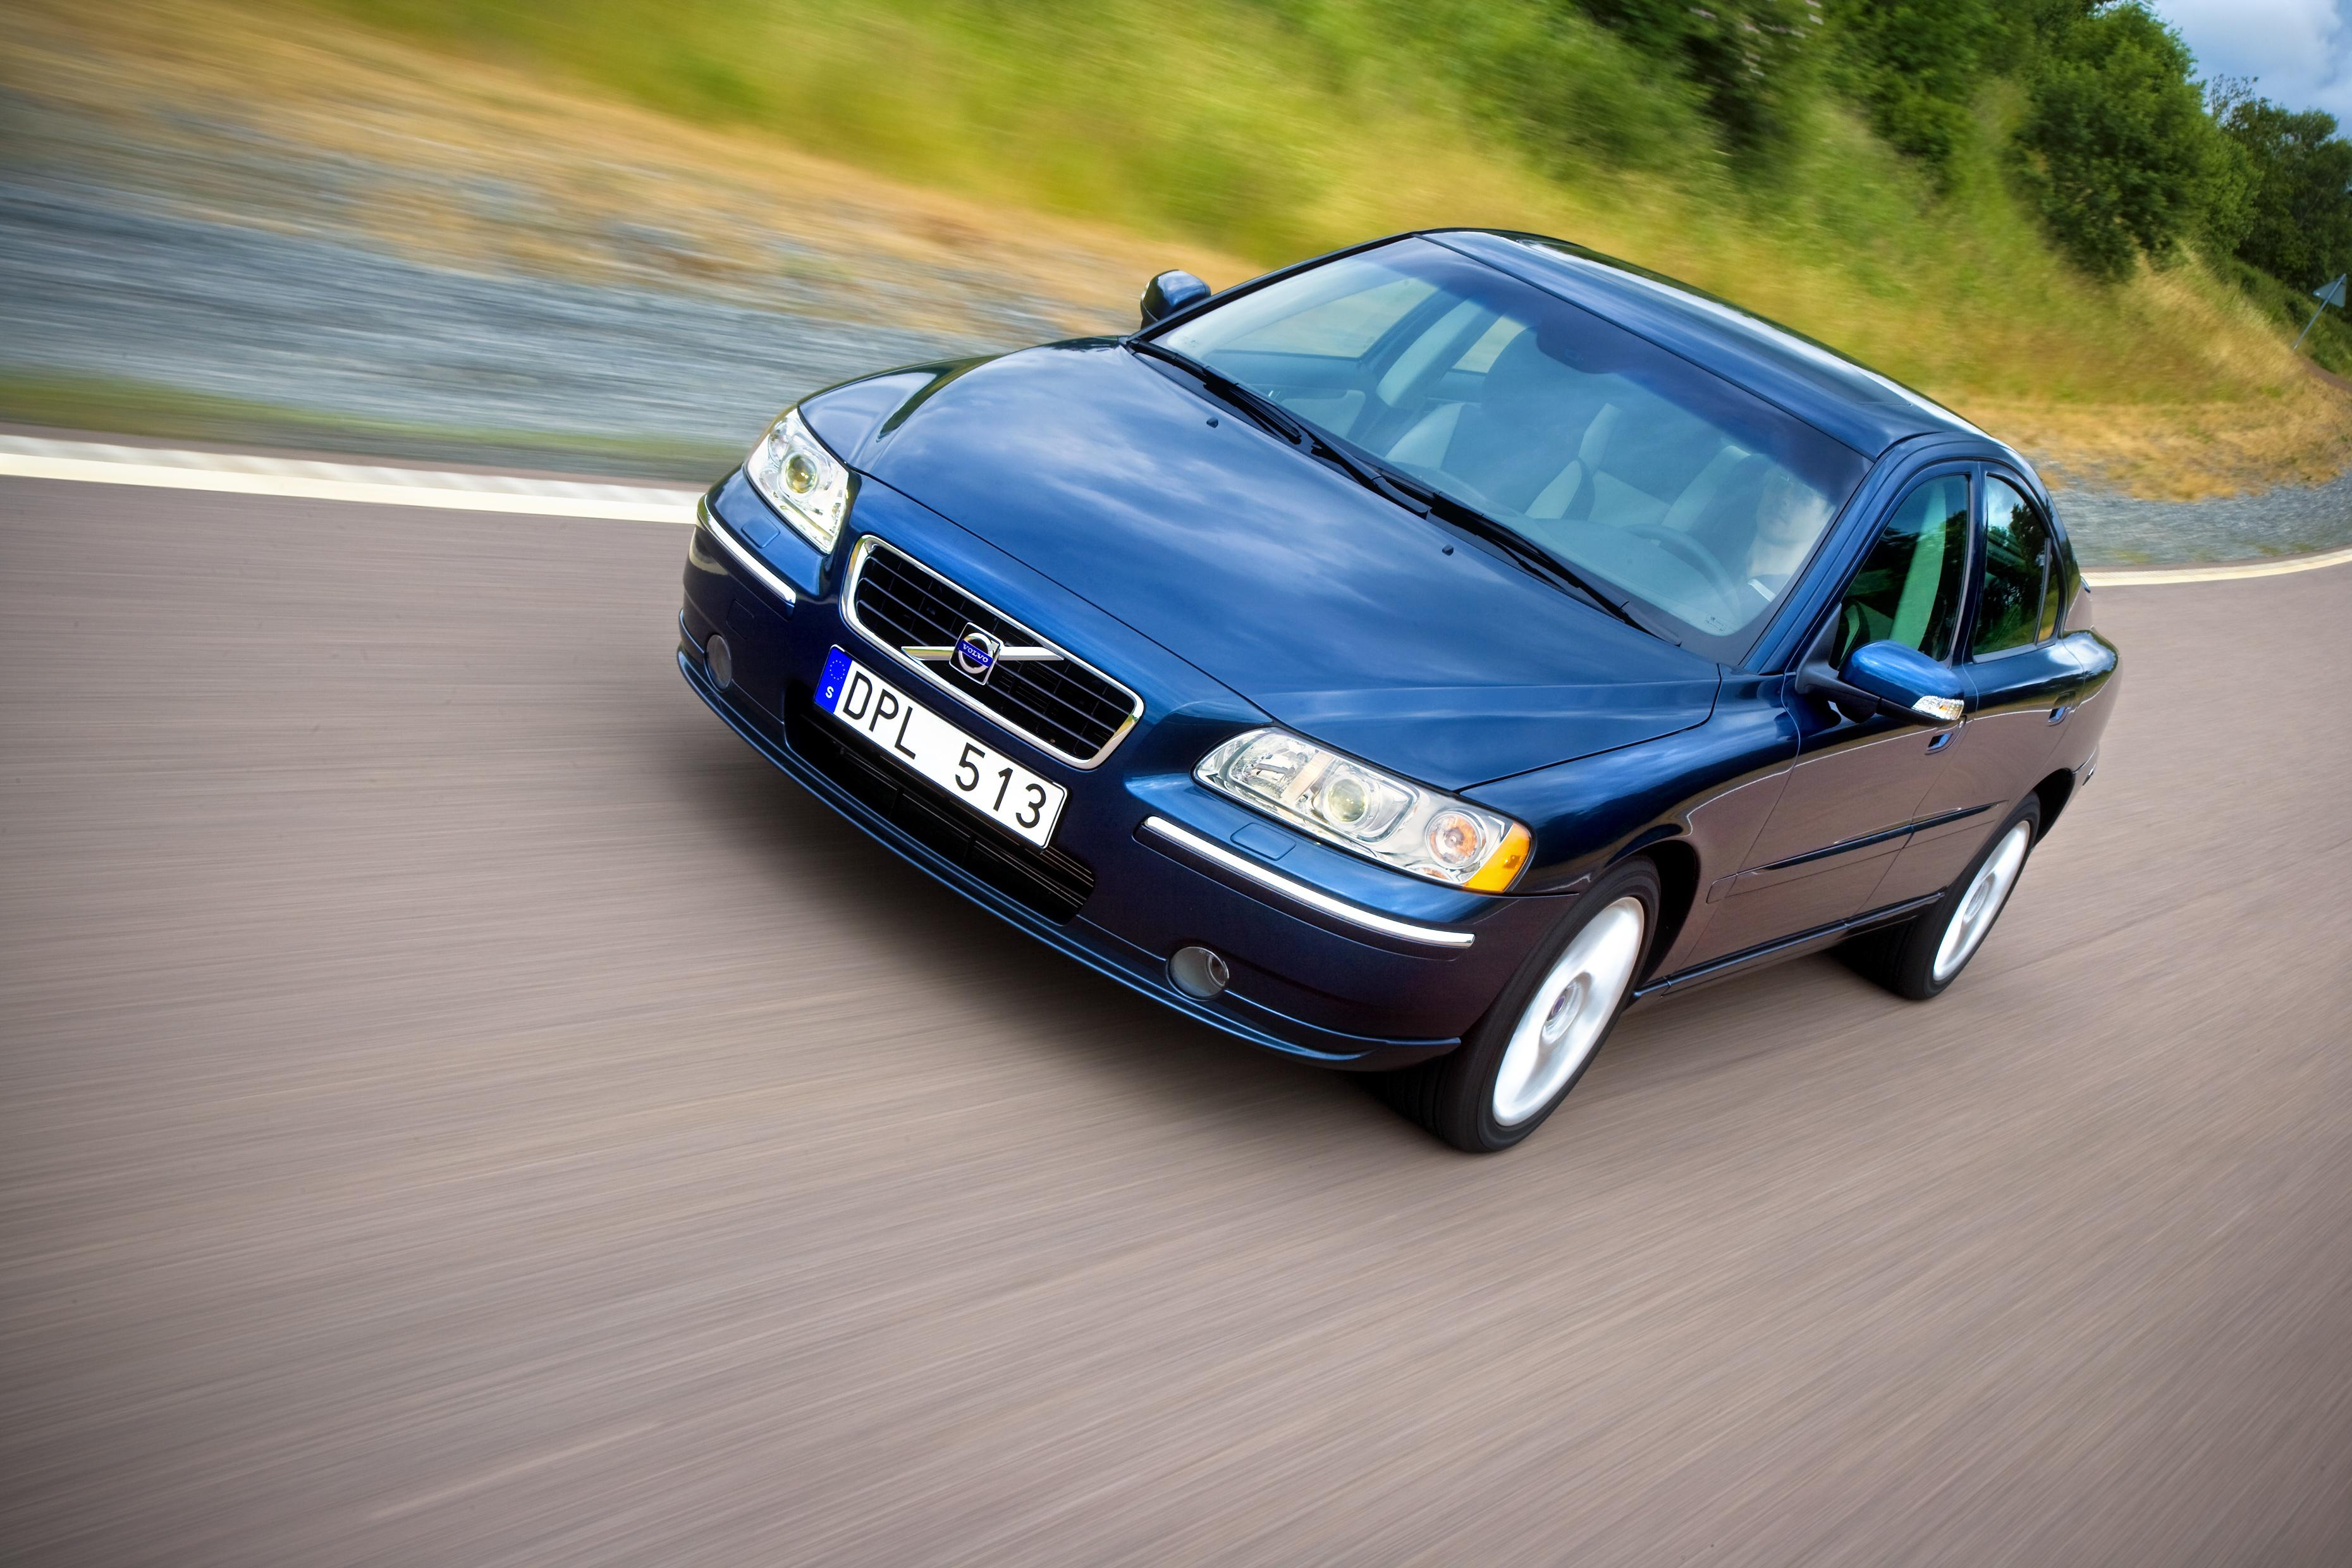 2008 Volvo S60 Review - Top Speed